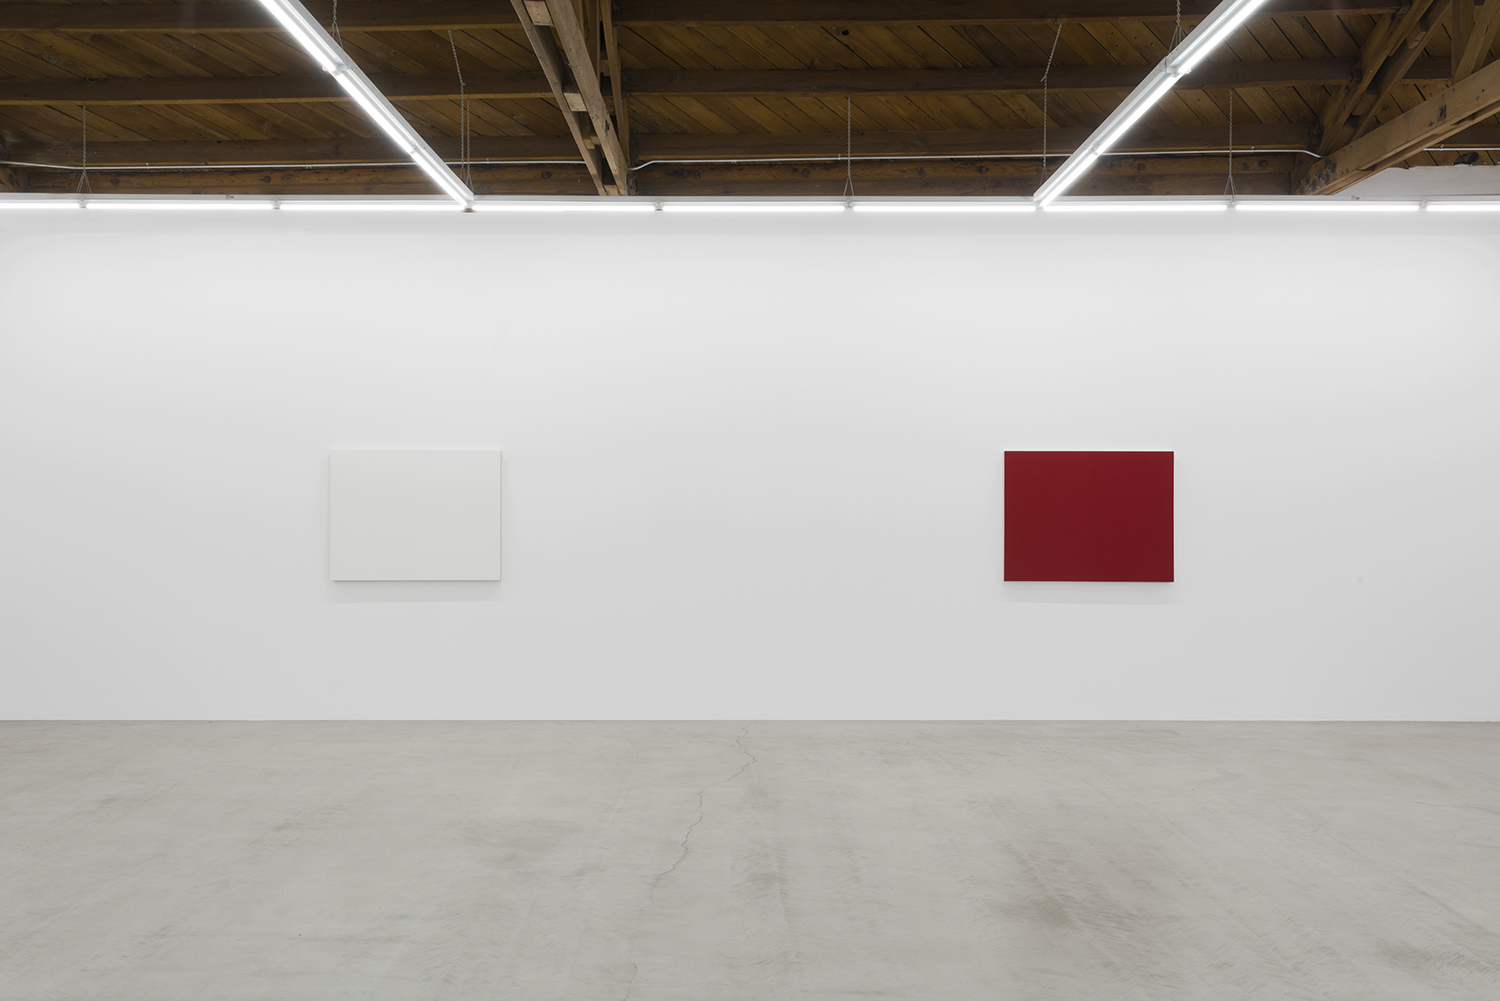 Installation view of two of Edith Baumann's monochrome paintings, white and red